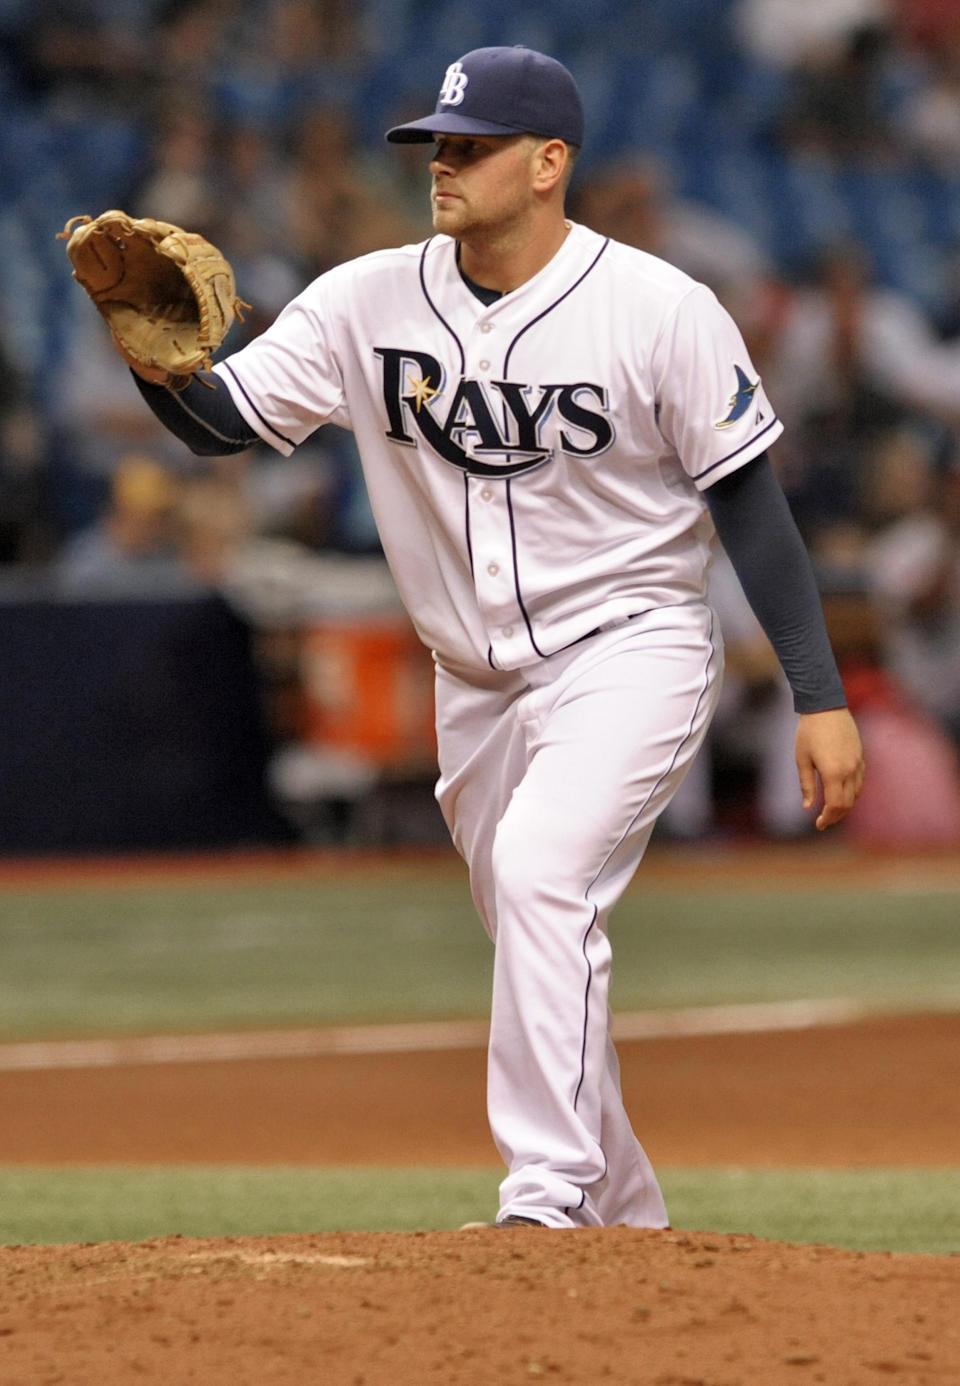 Tampa Bay Rays reliever C.J. Riefenhauser waits for a new ball after giving up a solo home run to Washington Nationals' Bryce Harper during the fifth inning of a baseball game Tuesday, June 16, 2015, in St. Petersburg, Fla. (AP Photo/Steve Nesius)